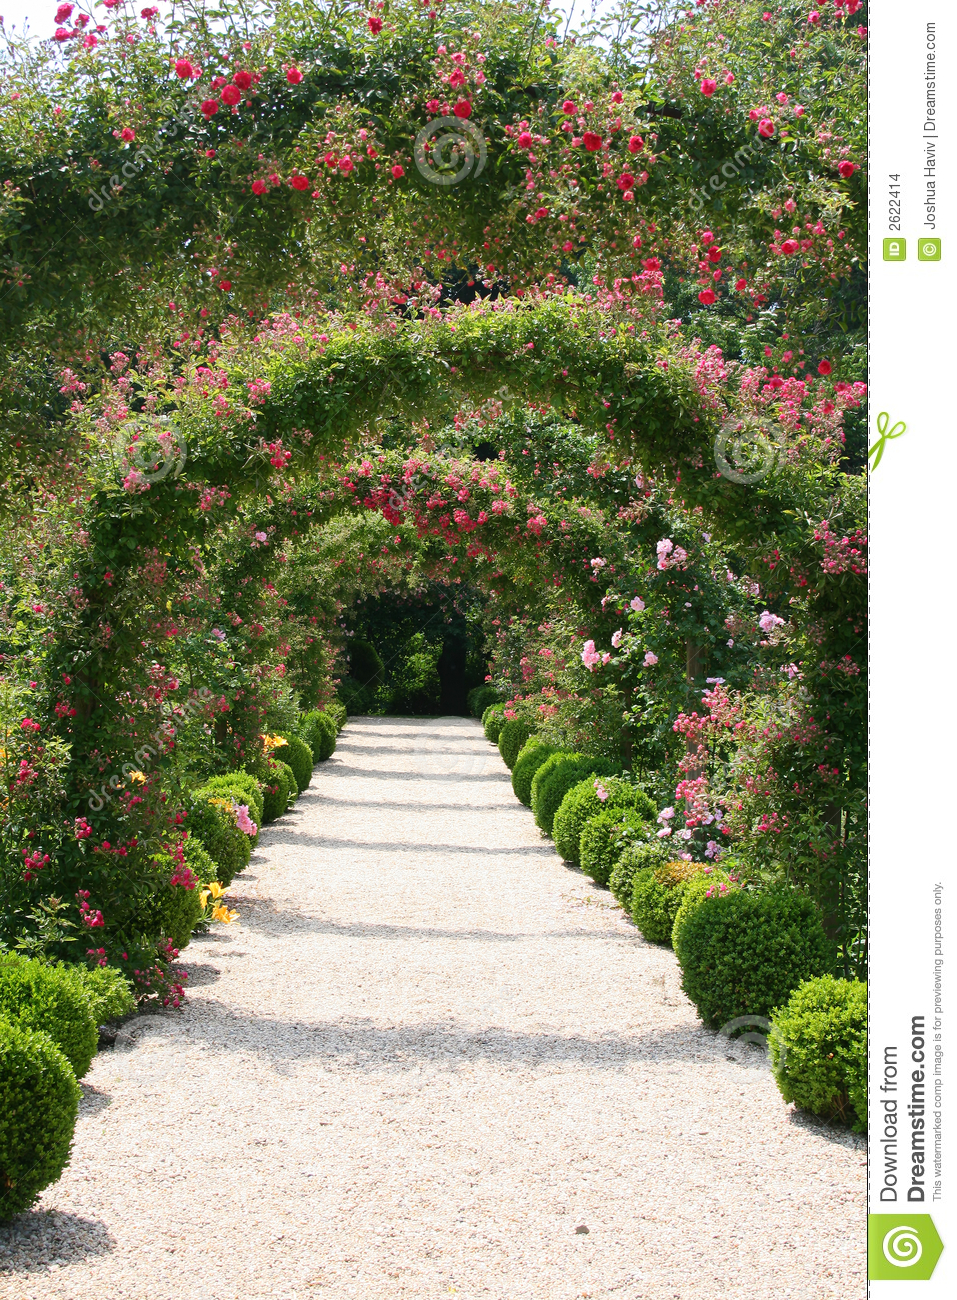 Rose Garden Landscape Stock Images - Image: 2622414